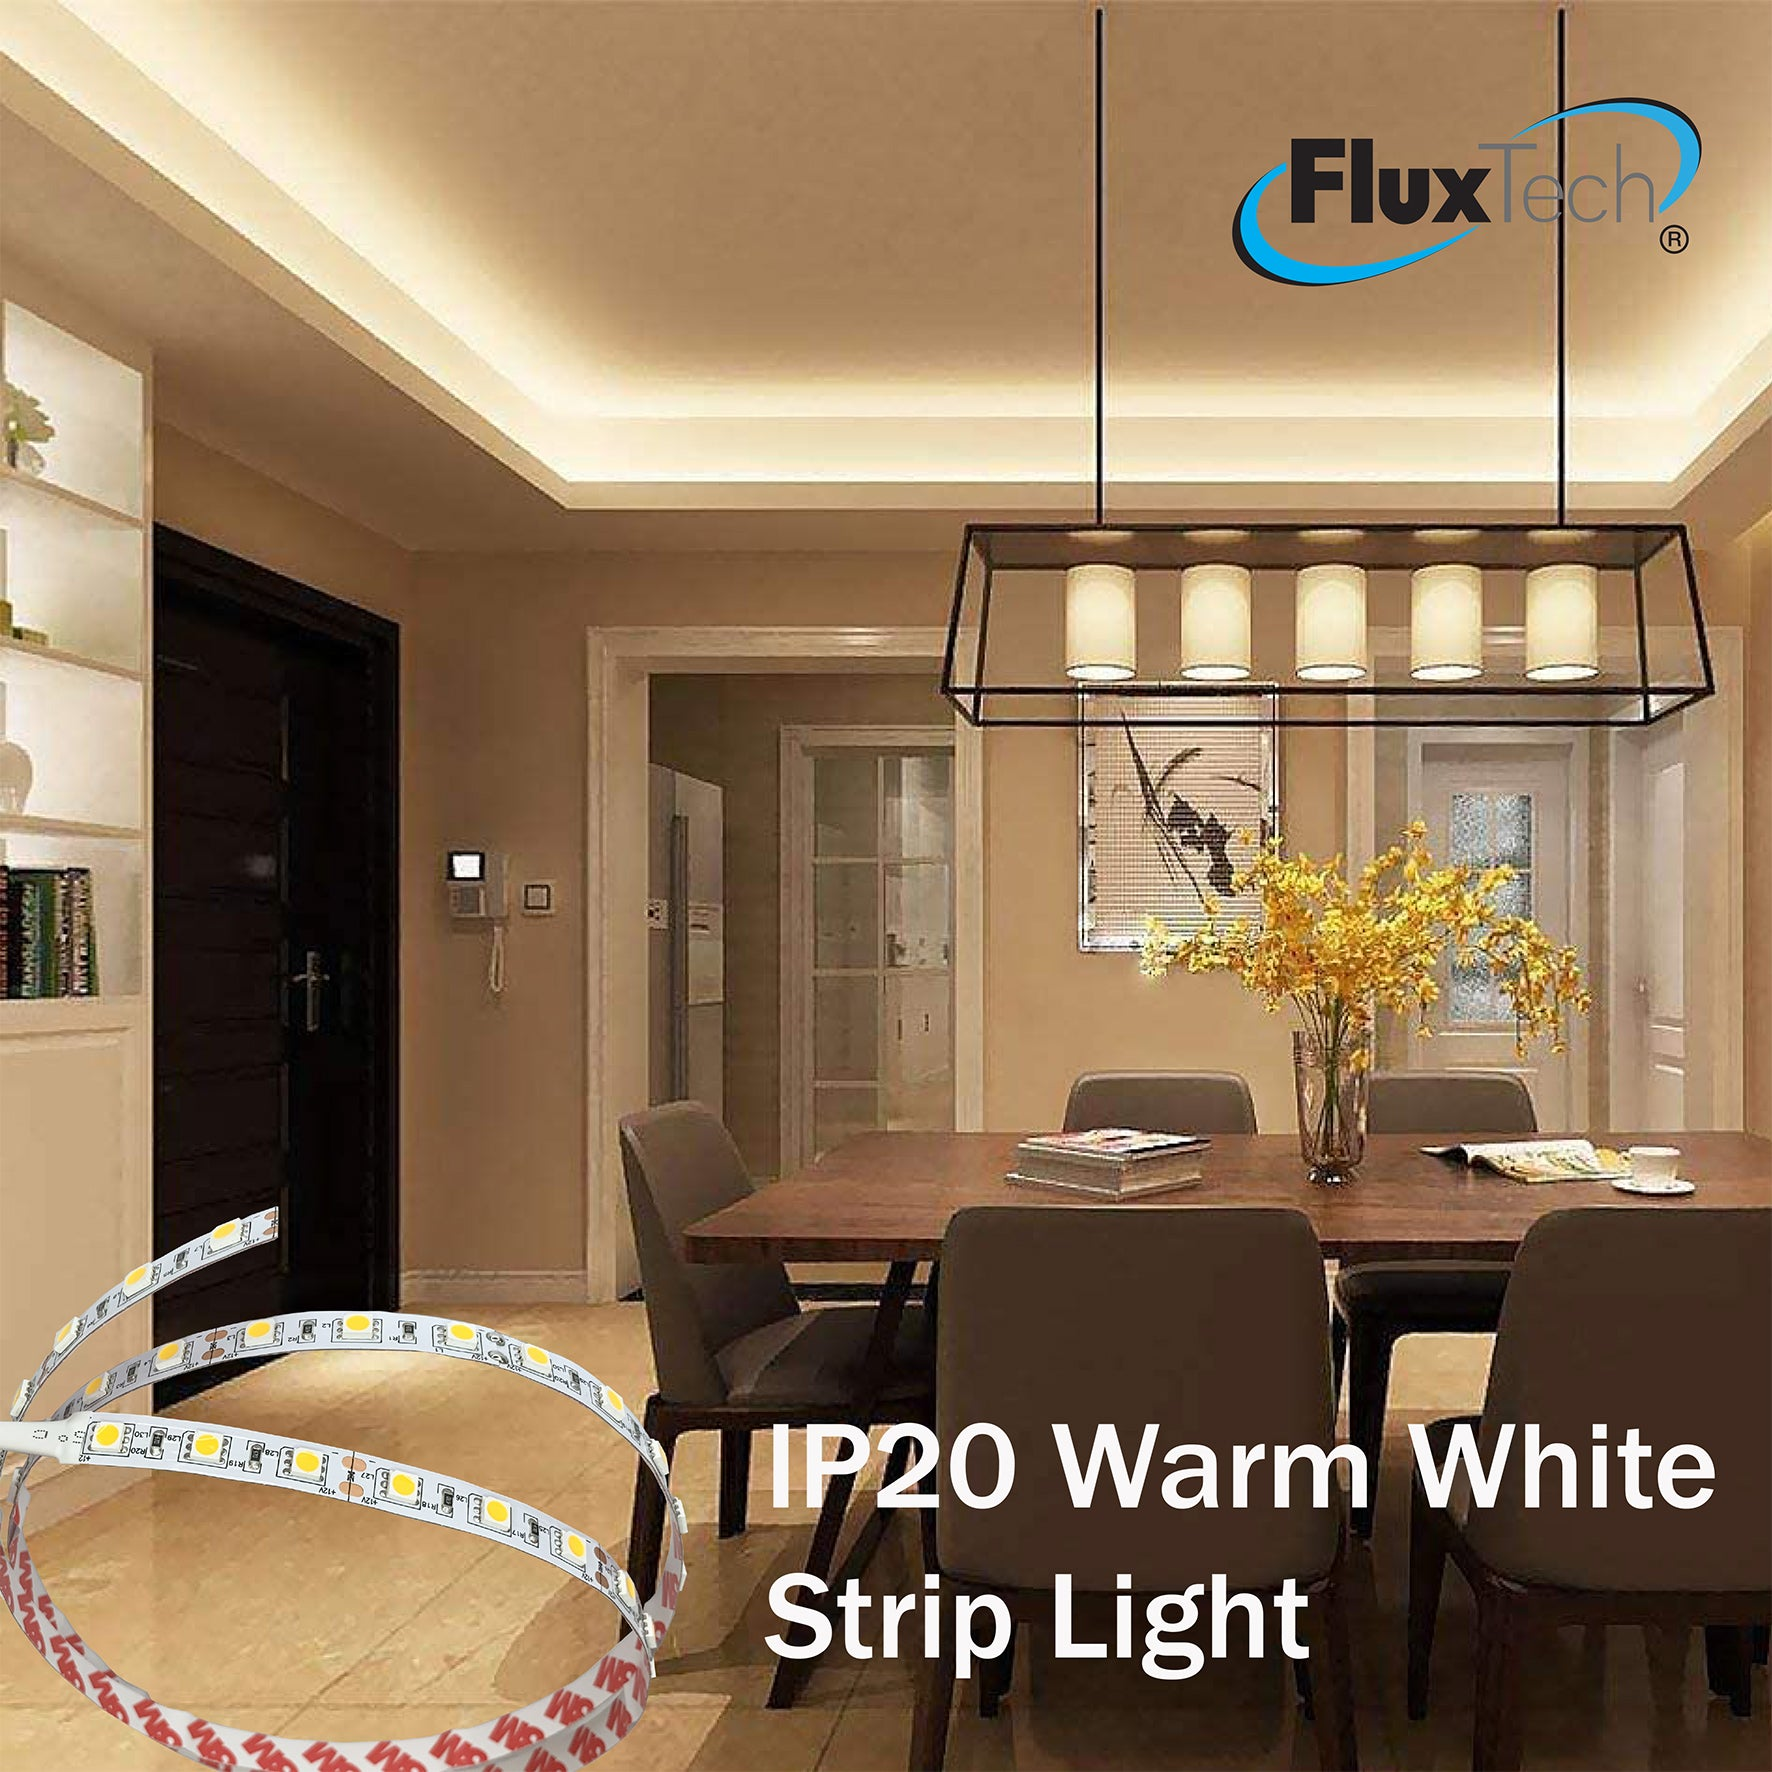 FluxTech - IP20 High Power Warm White Colour Strip Light - Low Voltage